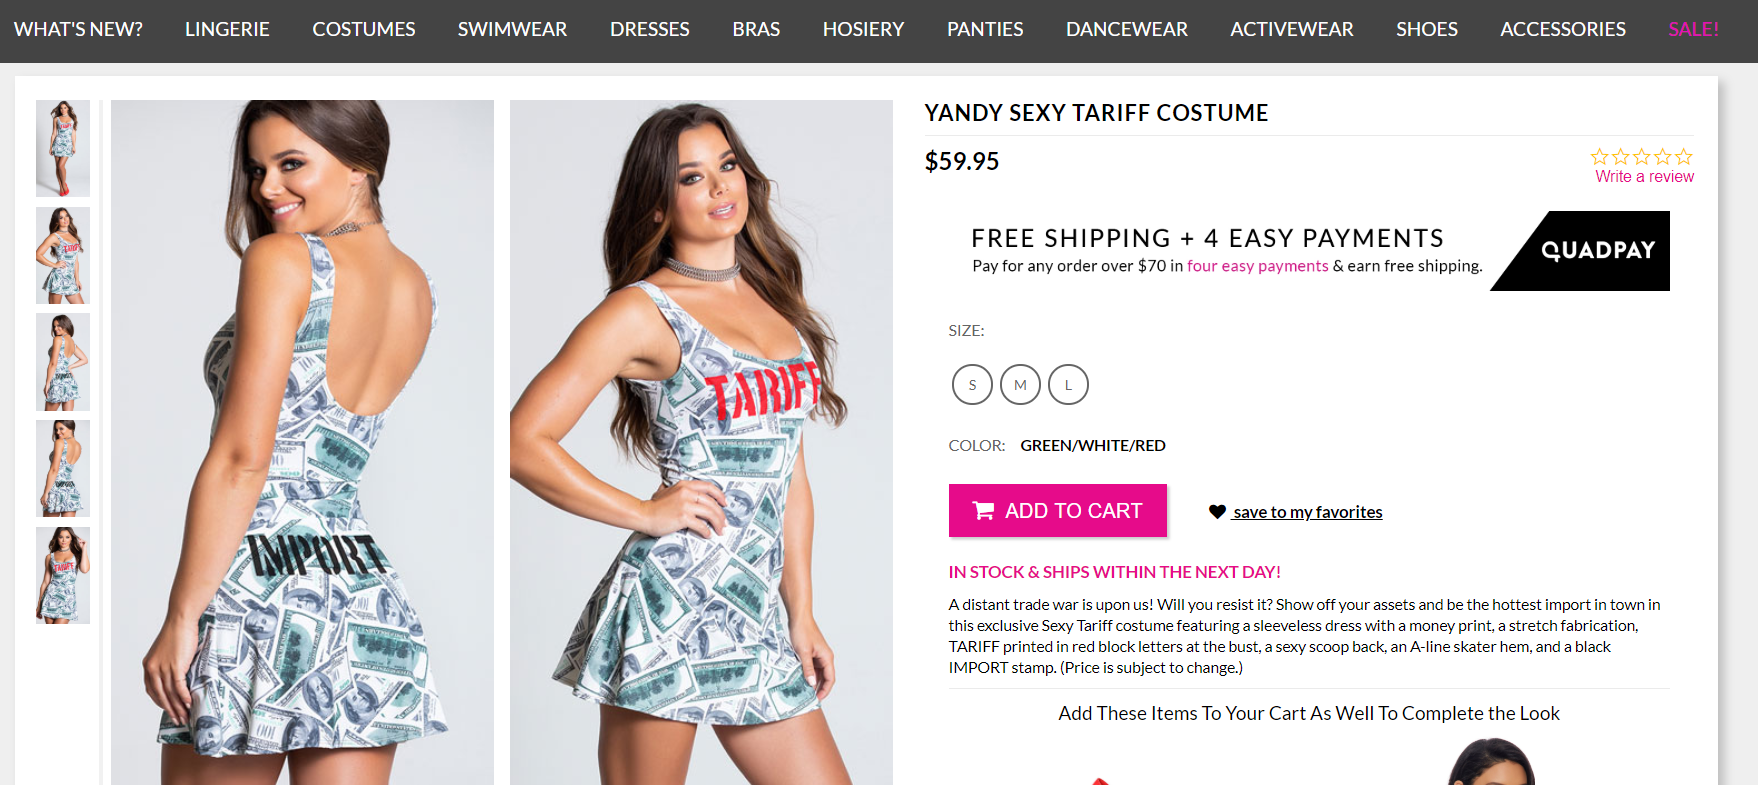 Yandy's 'Sexy Tariff' costume is timely surprise, not actually valid against Chinese regime